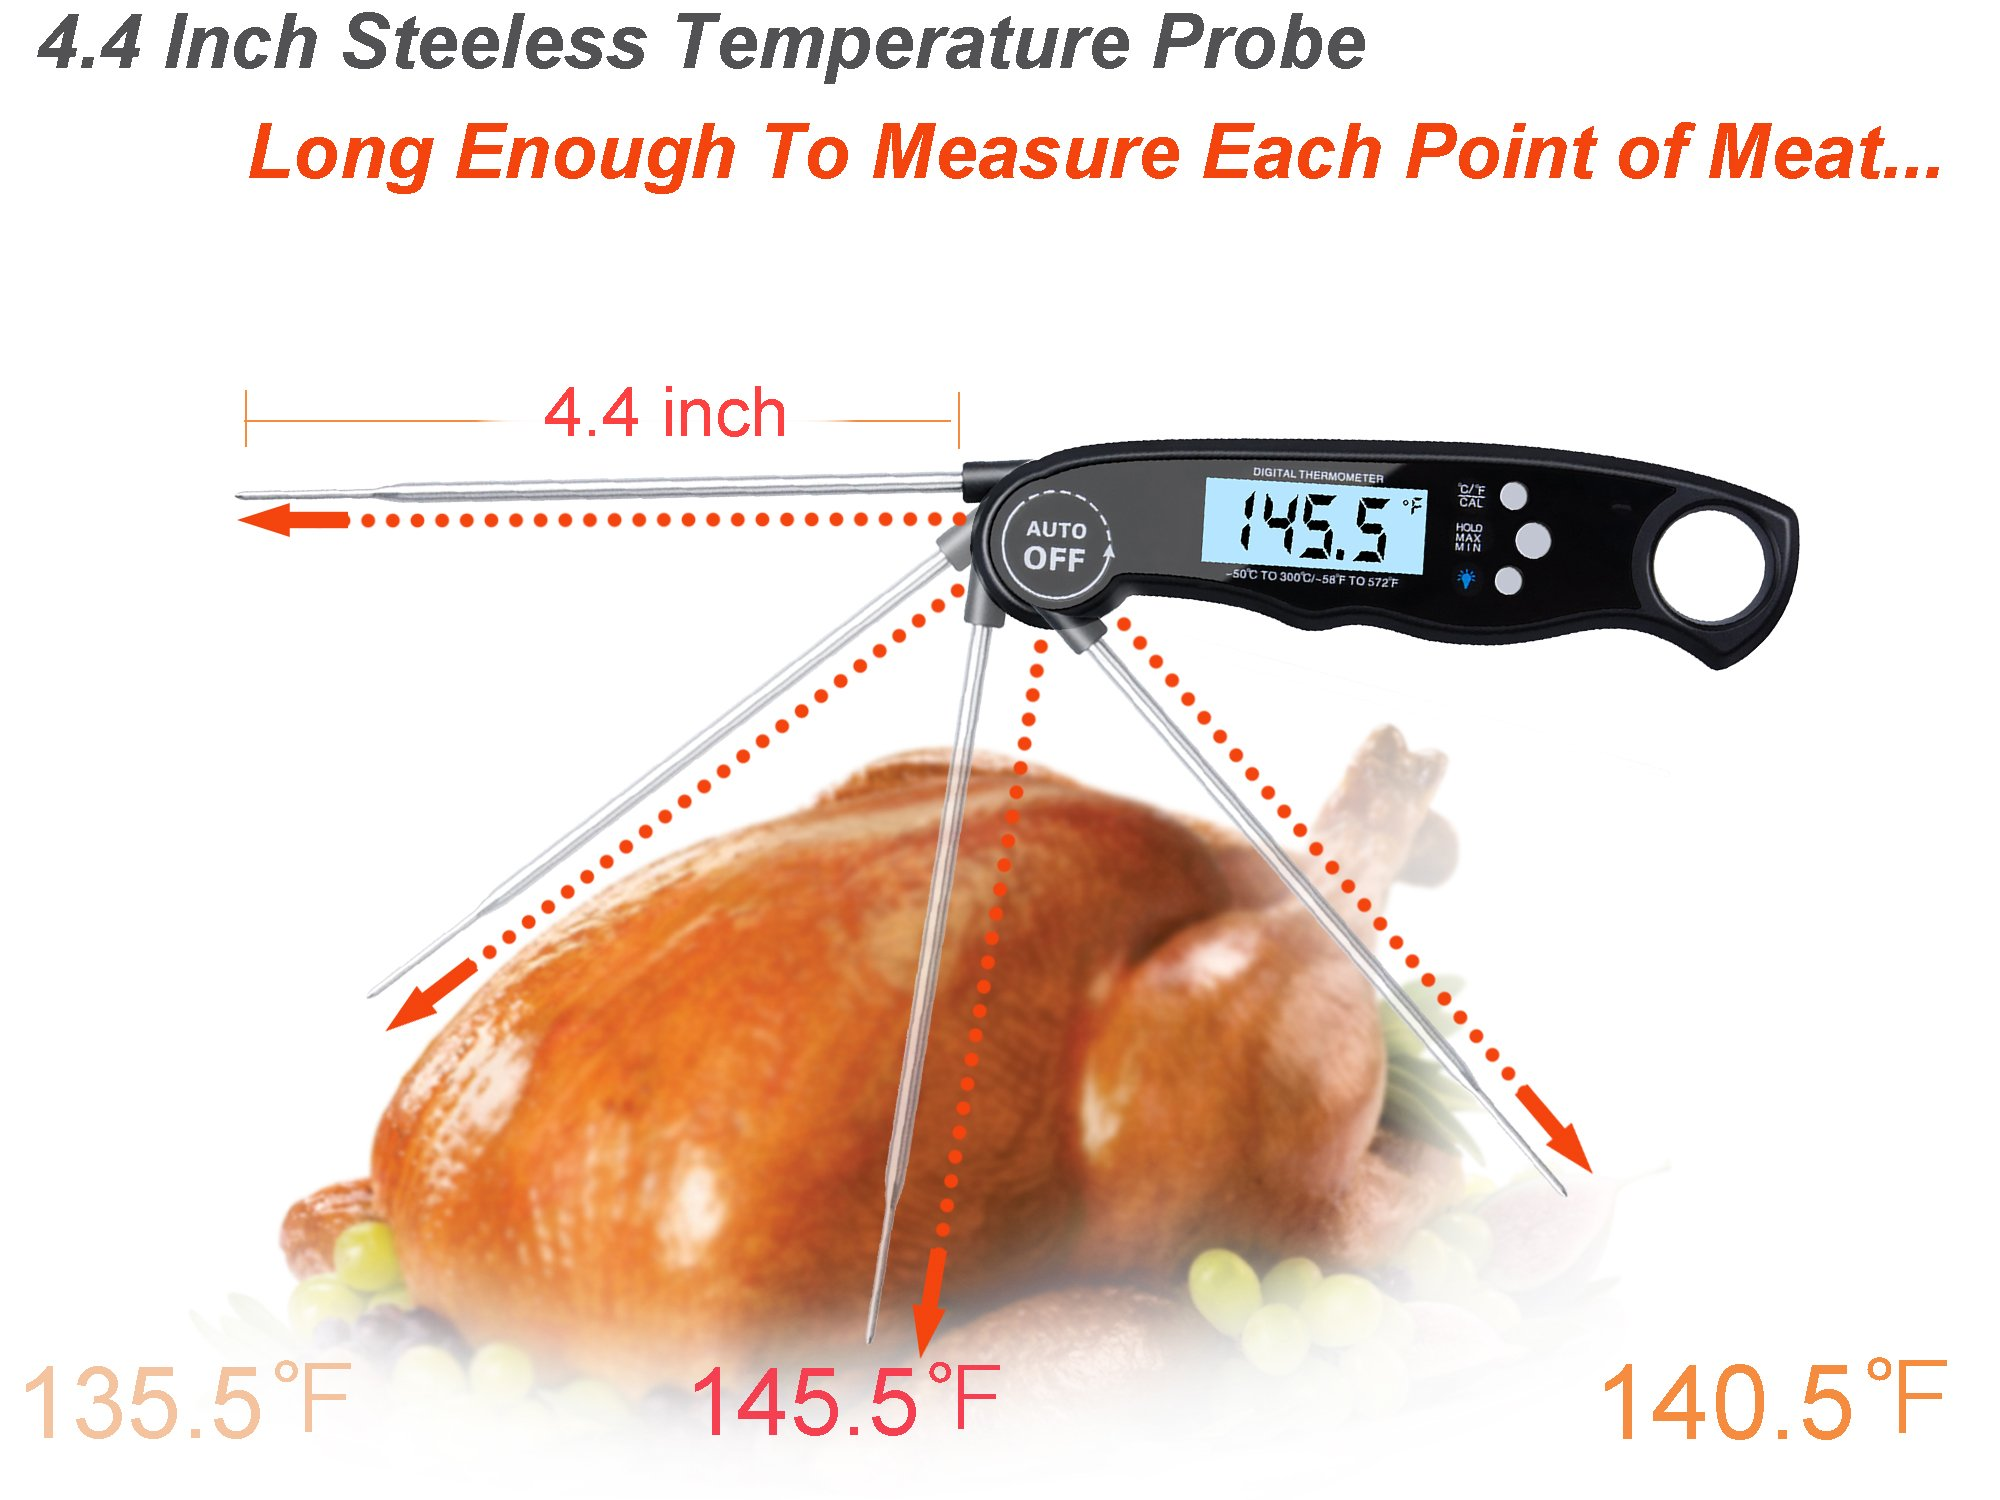 Digital Meat Thermometer-Waterproof Instant Read Thermometer with 4.4 Inches Long Probe,Auto Power On,Large LCD Screen,Backlight,Calibration,Super Fast Food Thermometer for Outdoor,Kitchen,Cooking,BBQ